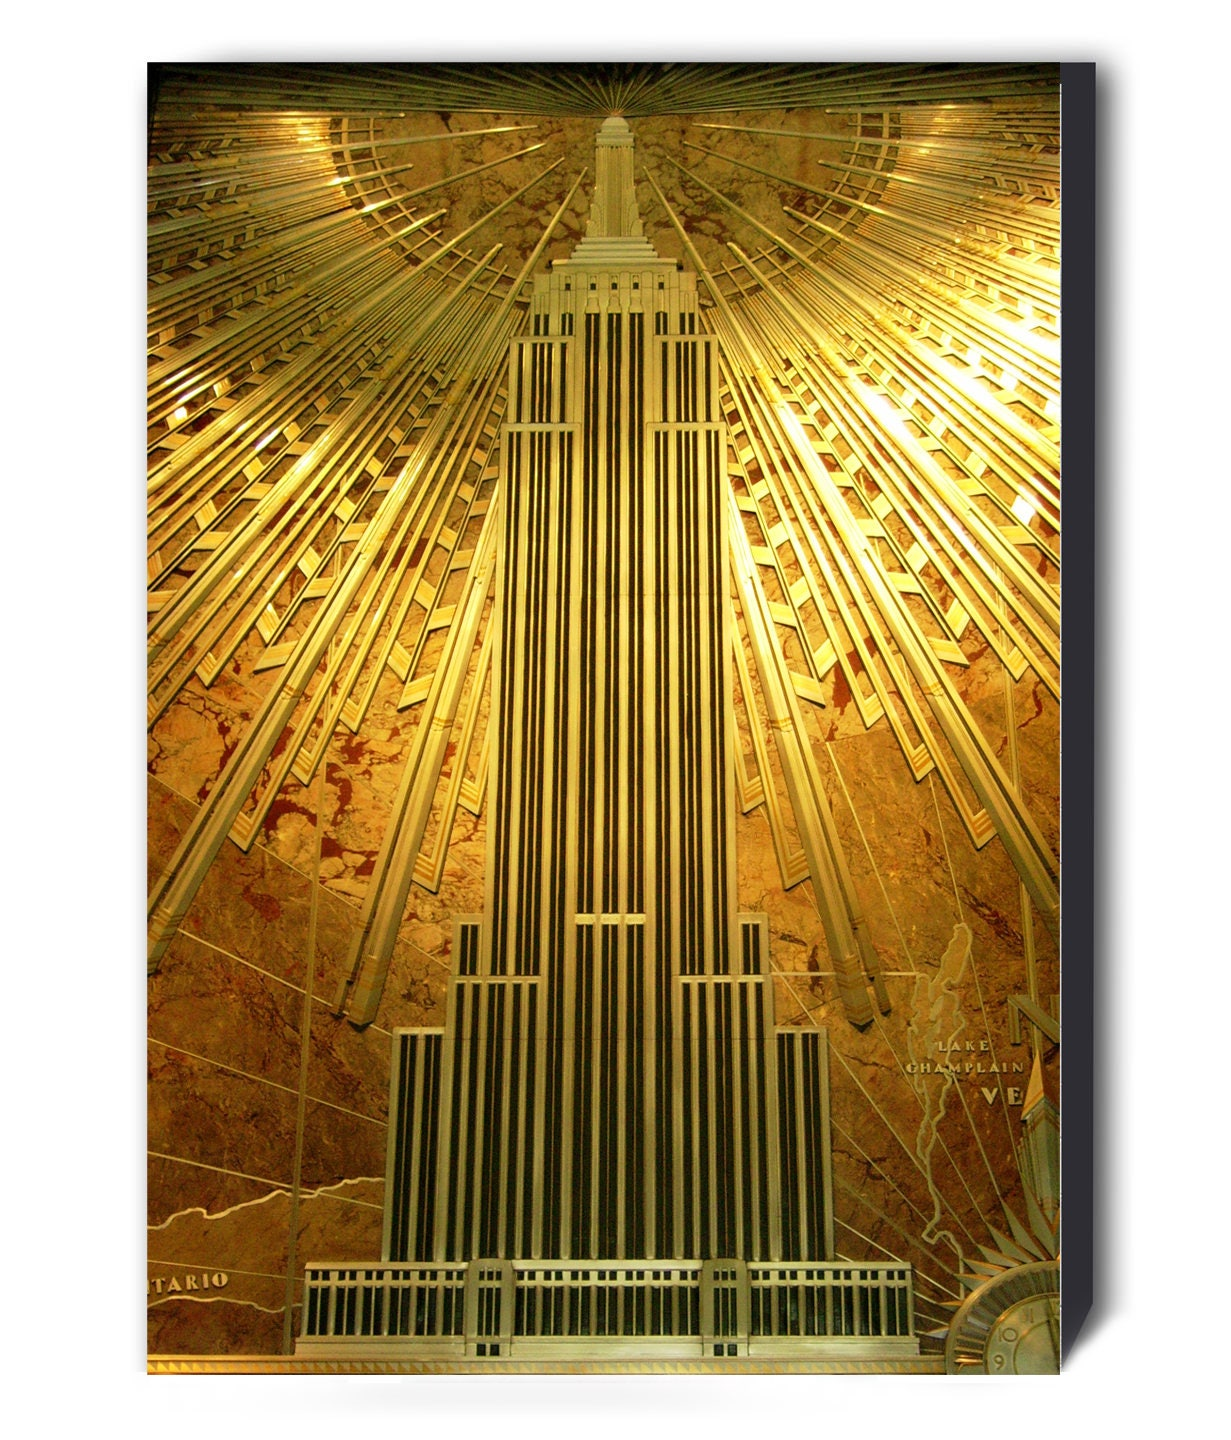 Gold Empire State Building Art Deco Canvas Wall Art Print | Etsy